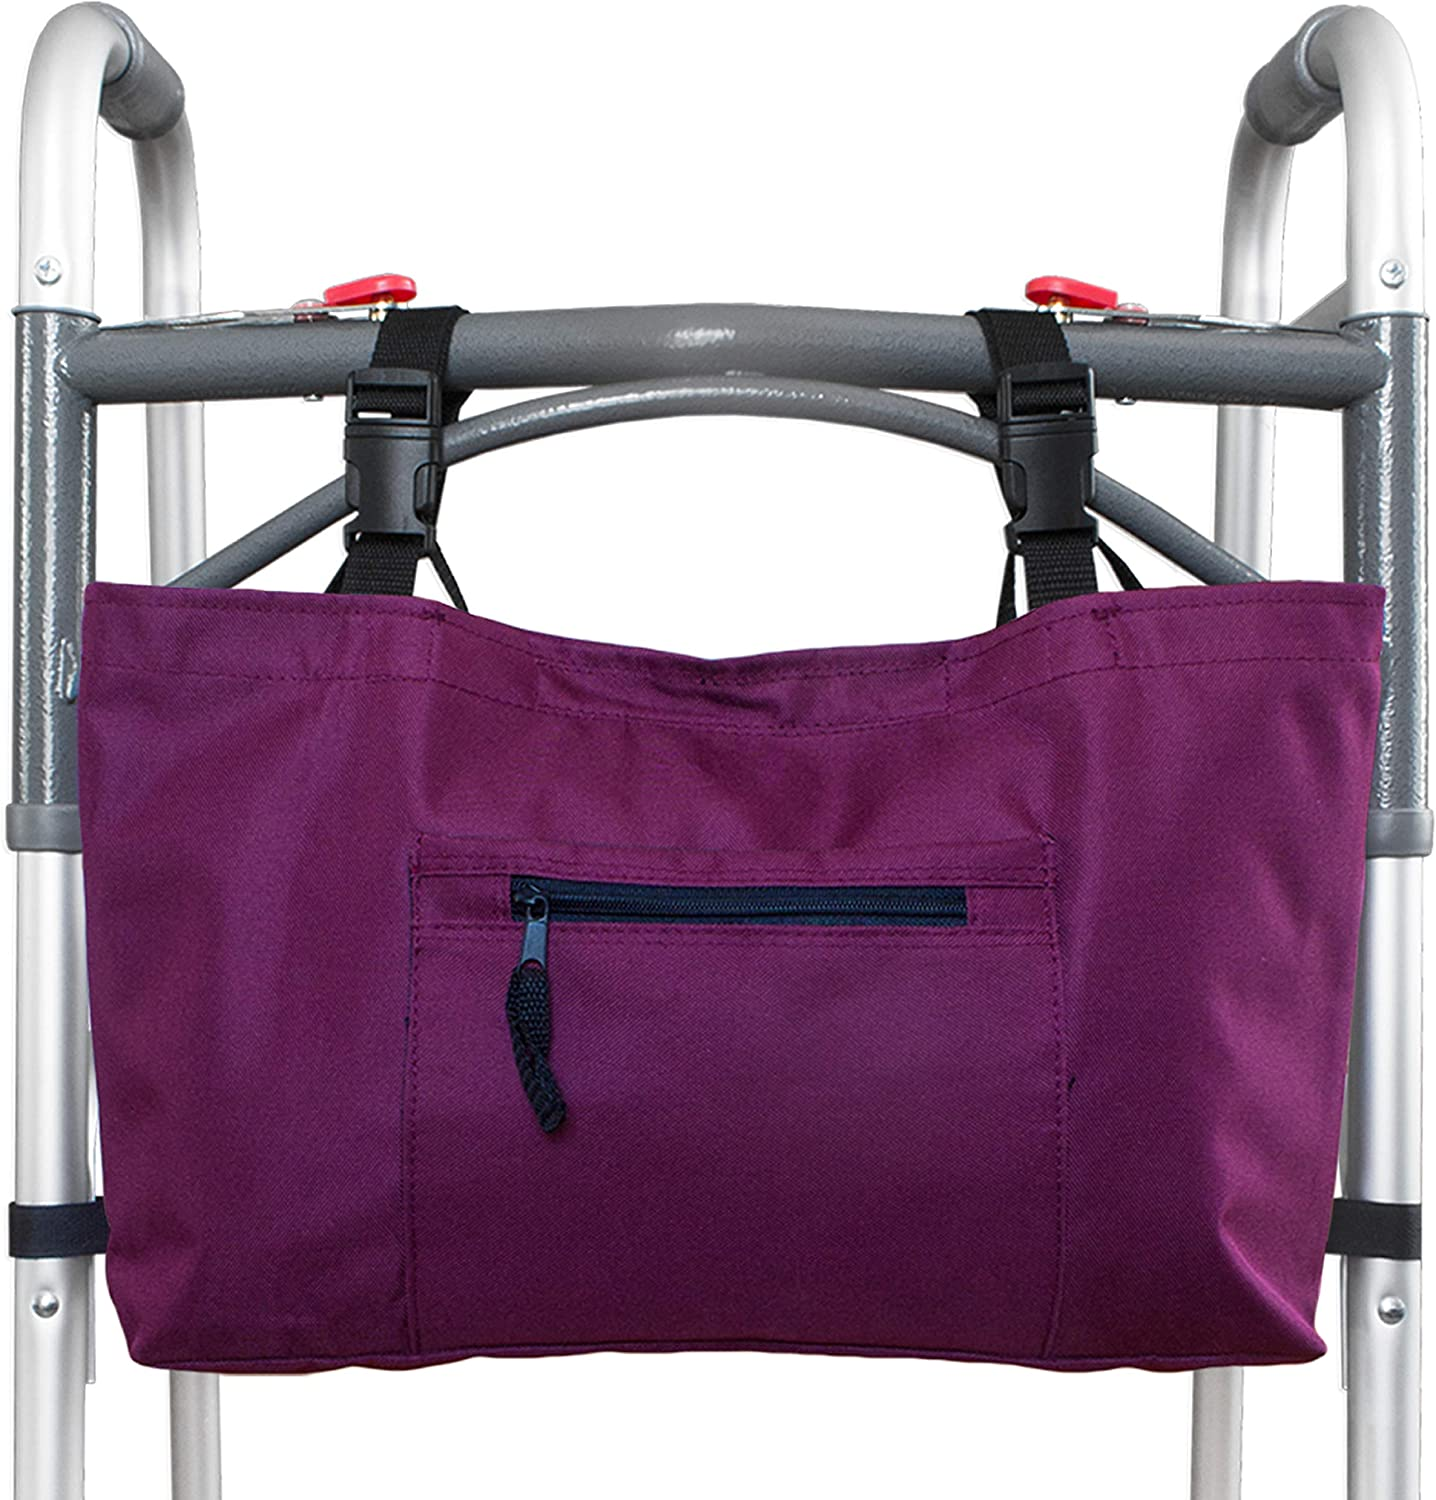 RMS Walker Bag with Soft Cooler - Water Resistant Tote with Temperature Controlled Thermal Compartment, Universal Fit for Walkers, Scooters or Rollator Walkers (Wine)